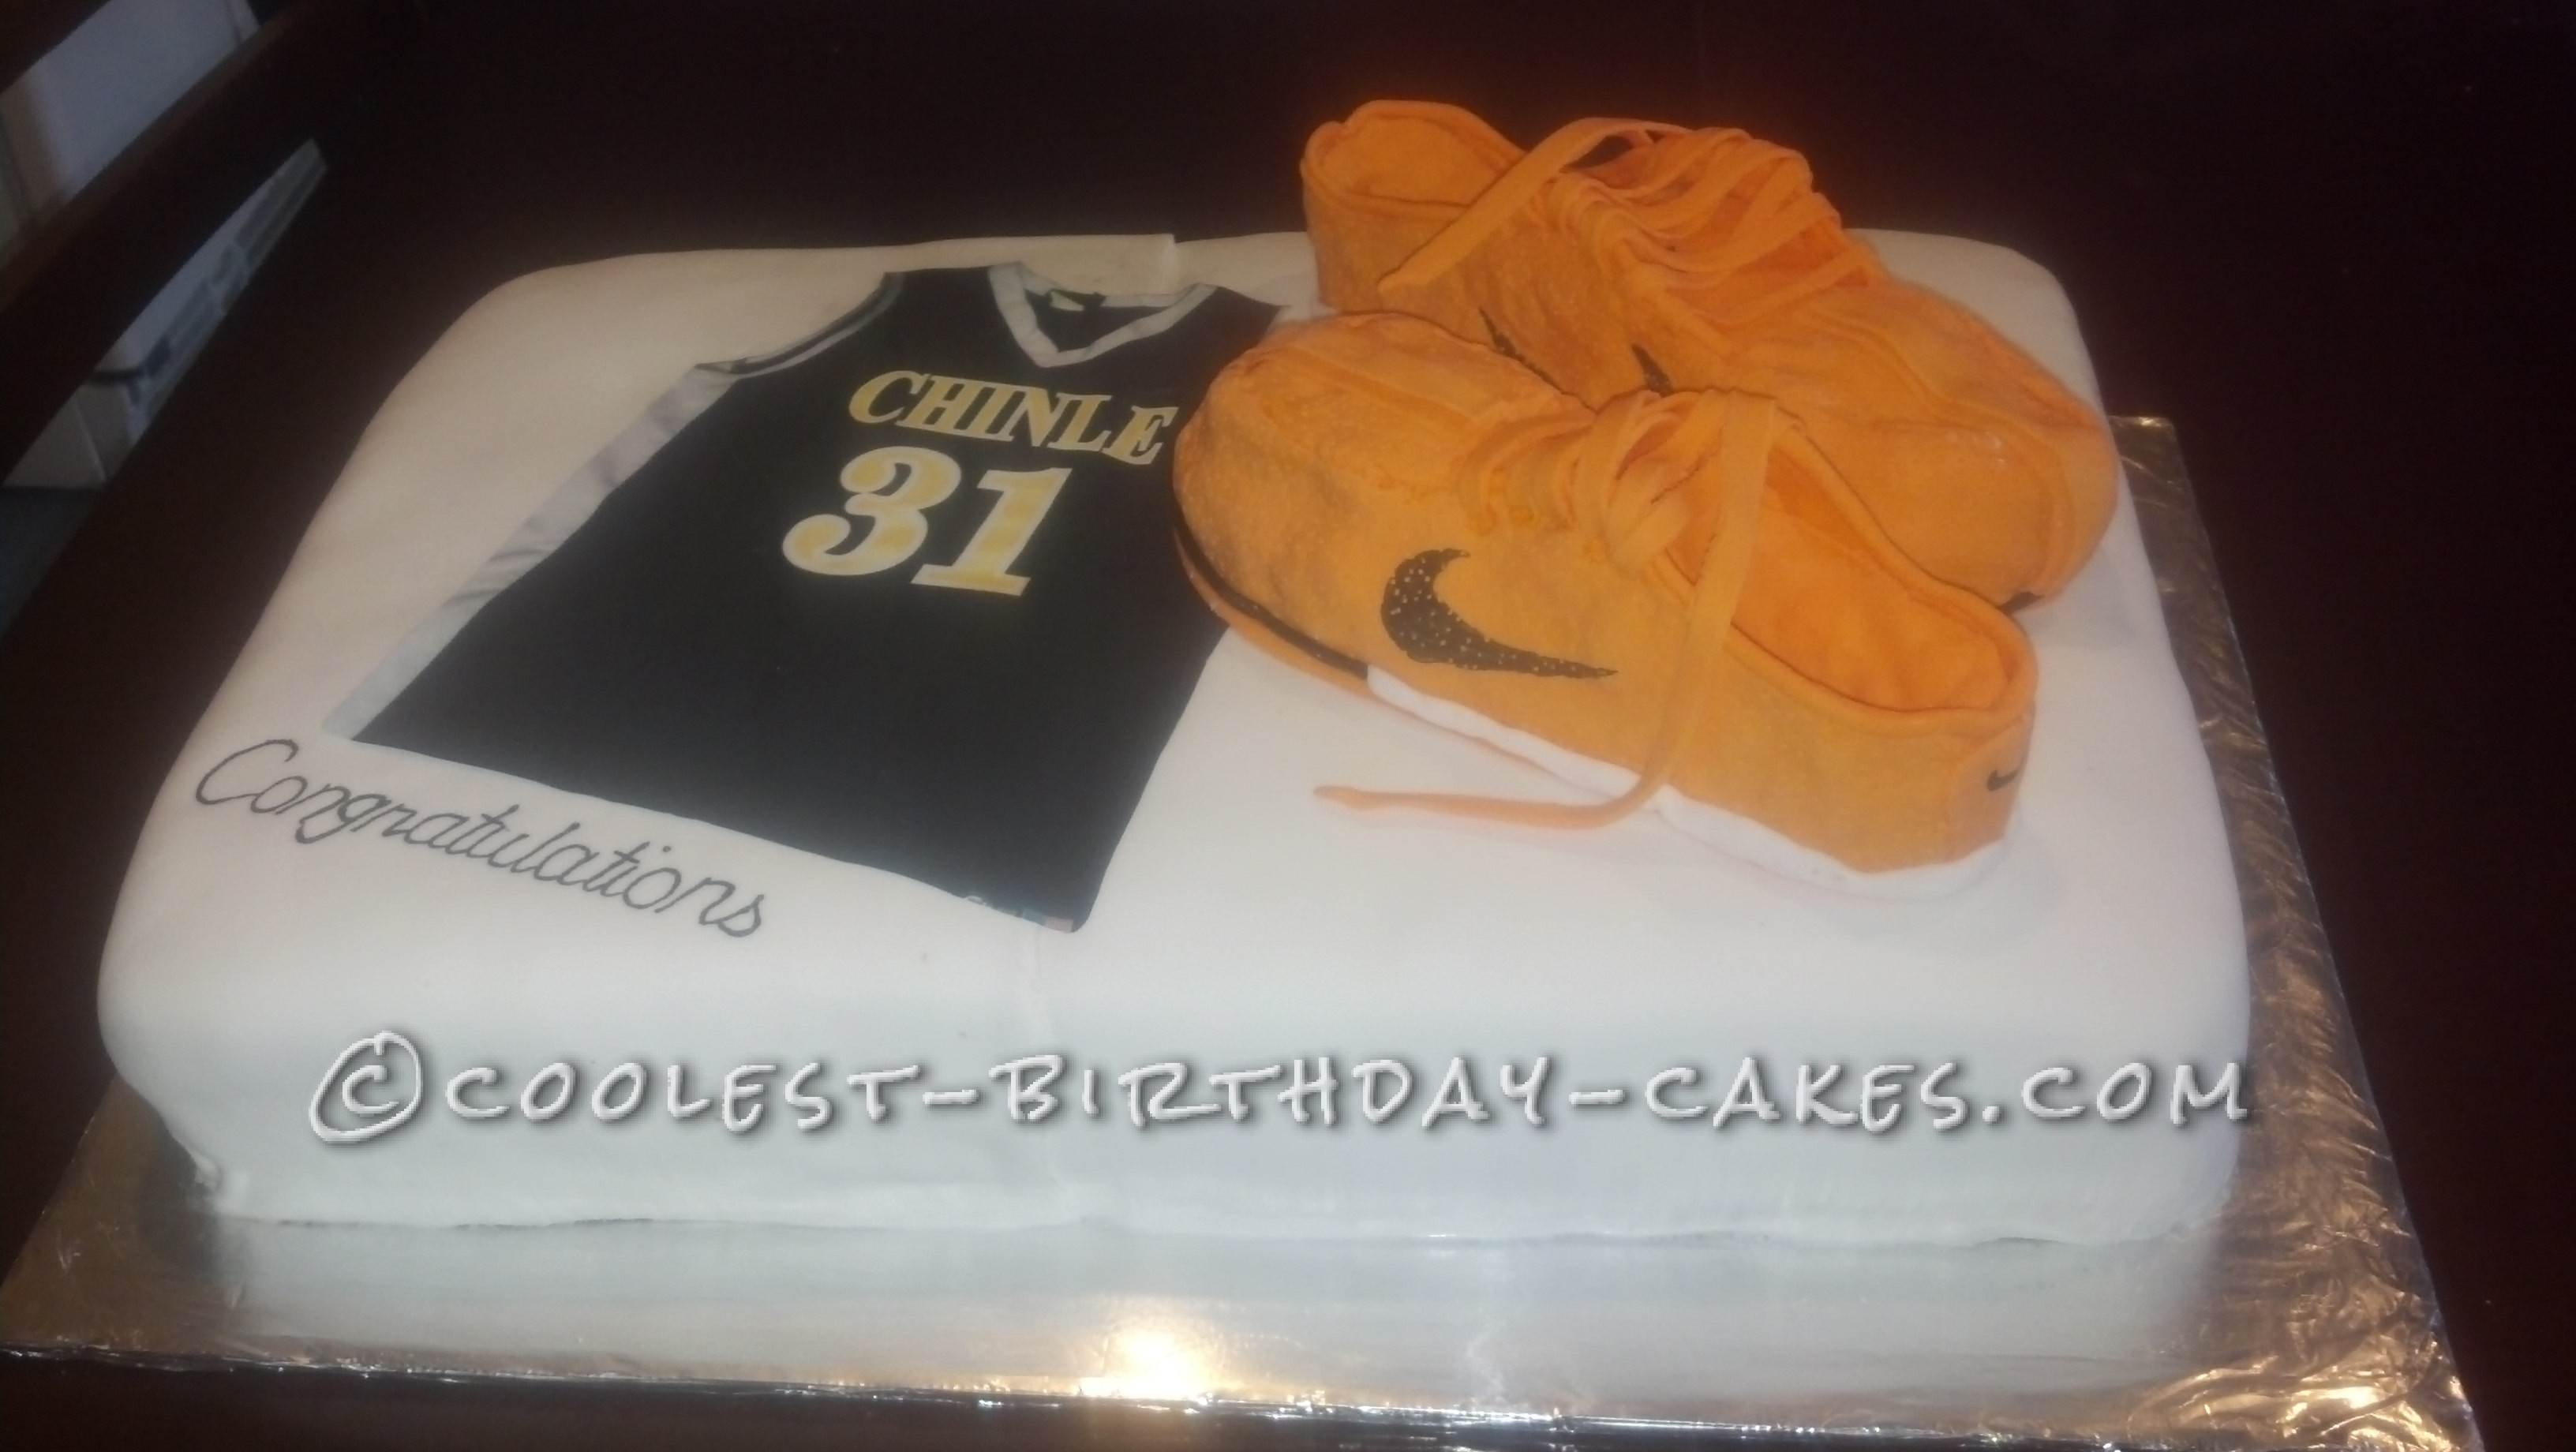 Coolest Basketball Cake